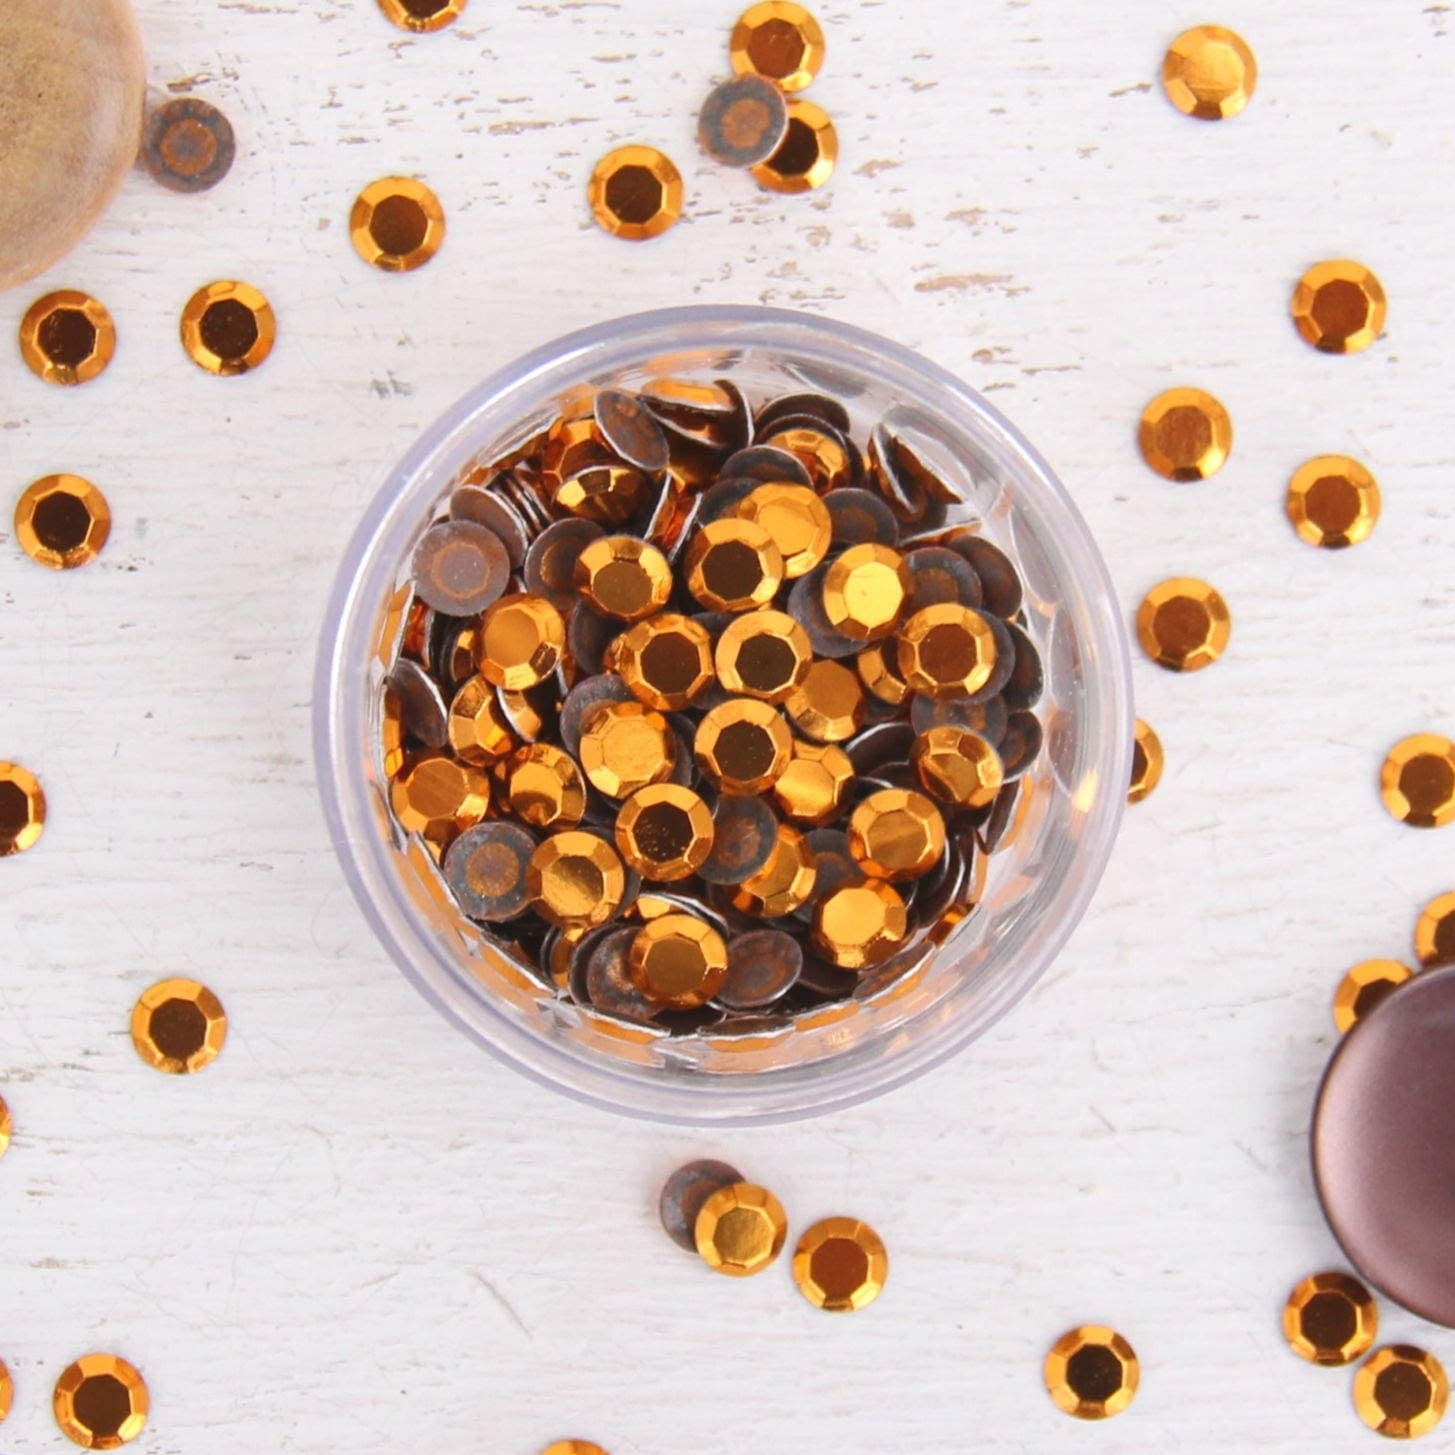 Hot Fix Rhinestuds Hot Fix Metallic Rhinestones 4mm Golden - 16SS - 4 gross Package - 576 Rhinestuds